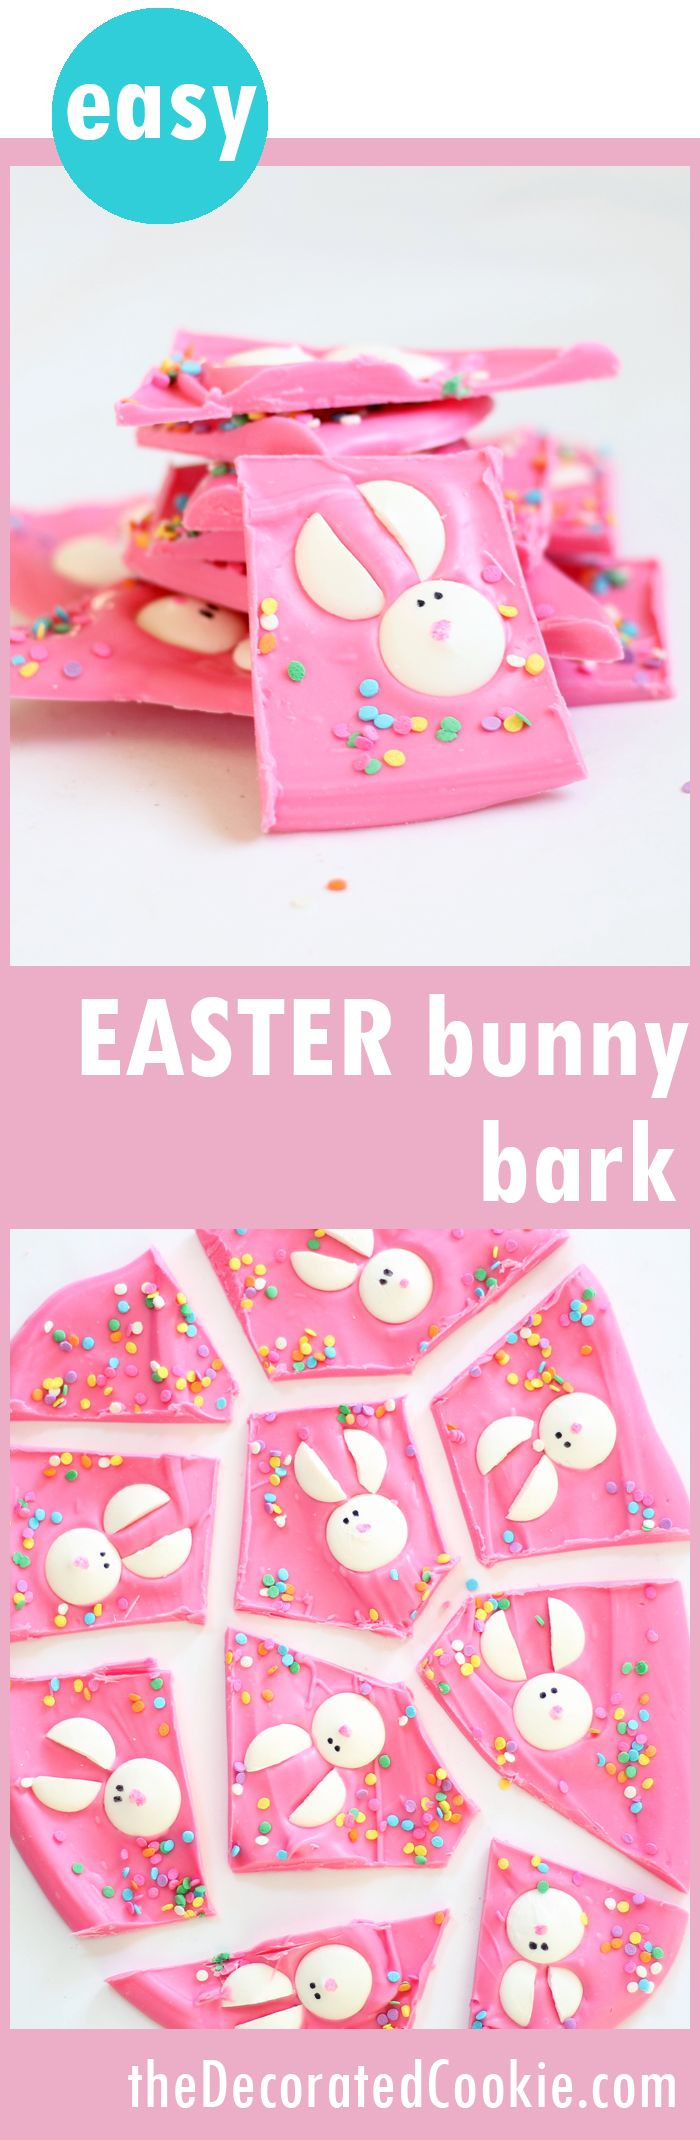 cute and easy EASTER bunny chocolate bark